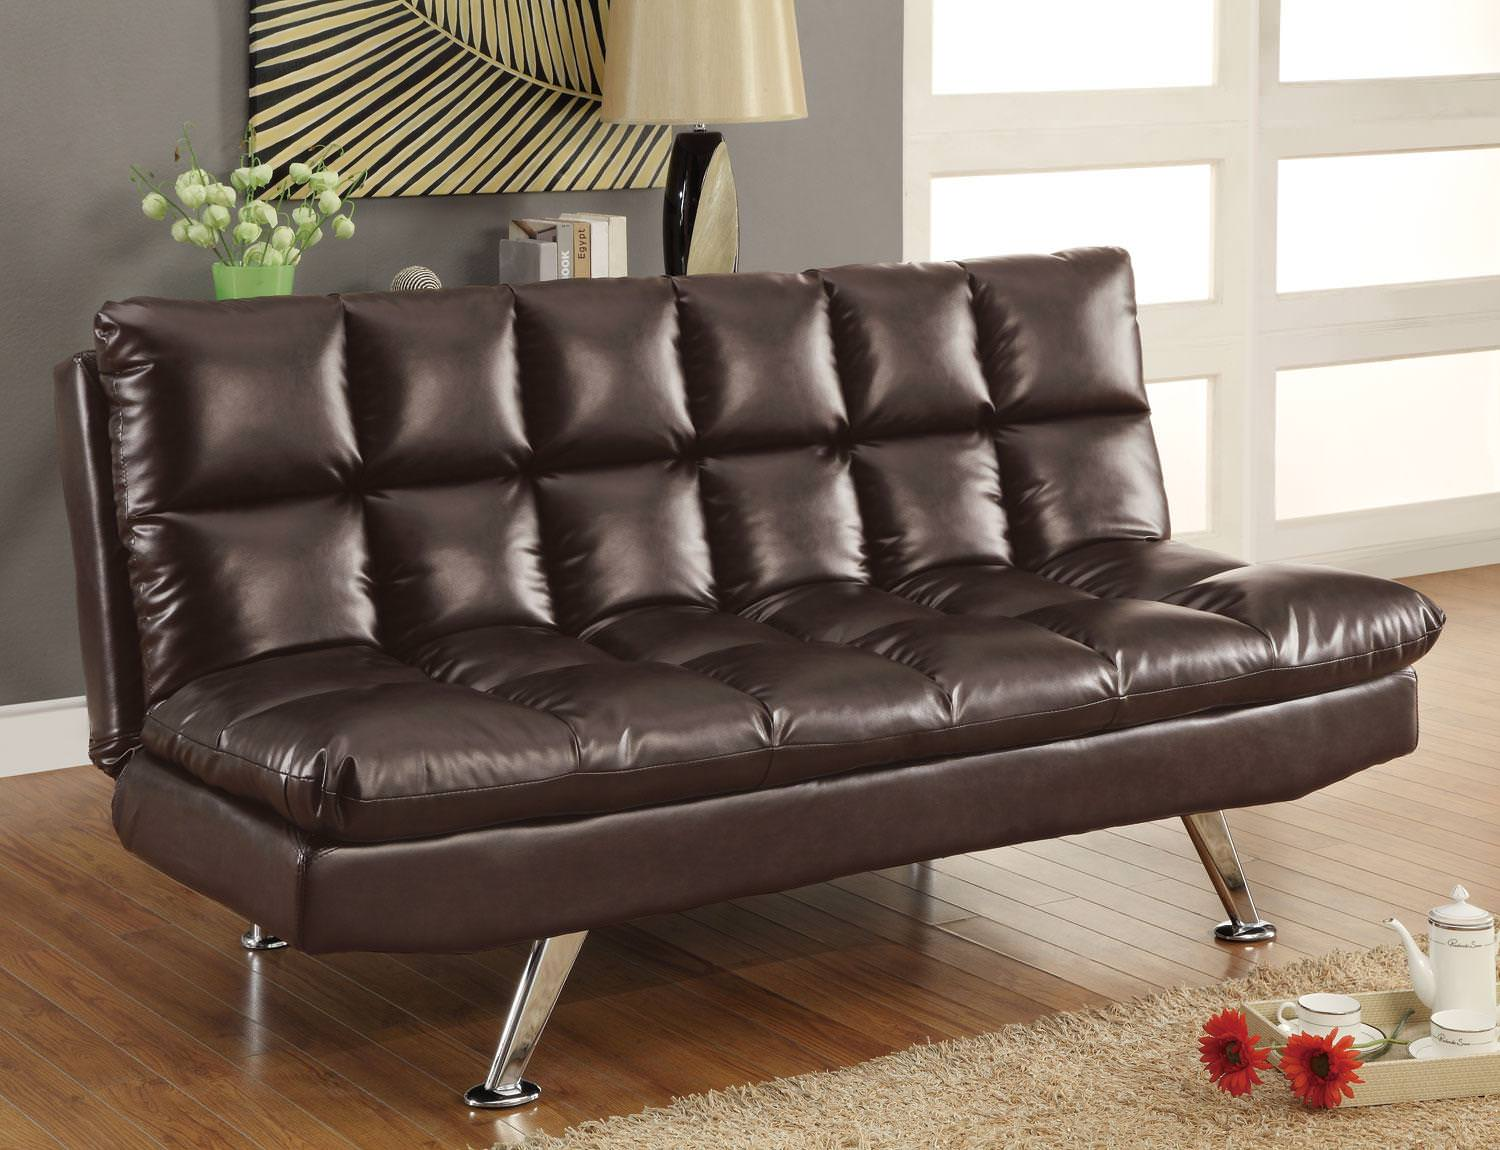 300122 sofa bed brown by coaster for Sofa bed name